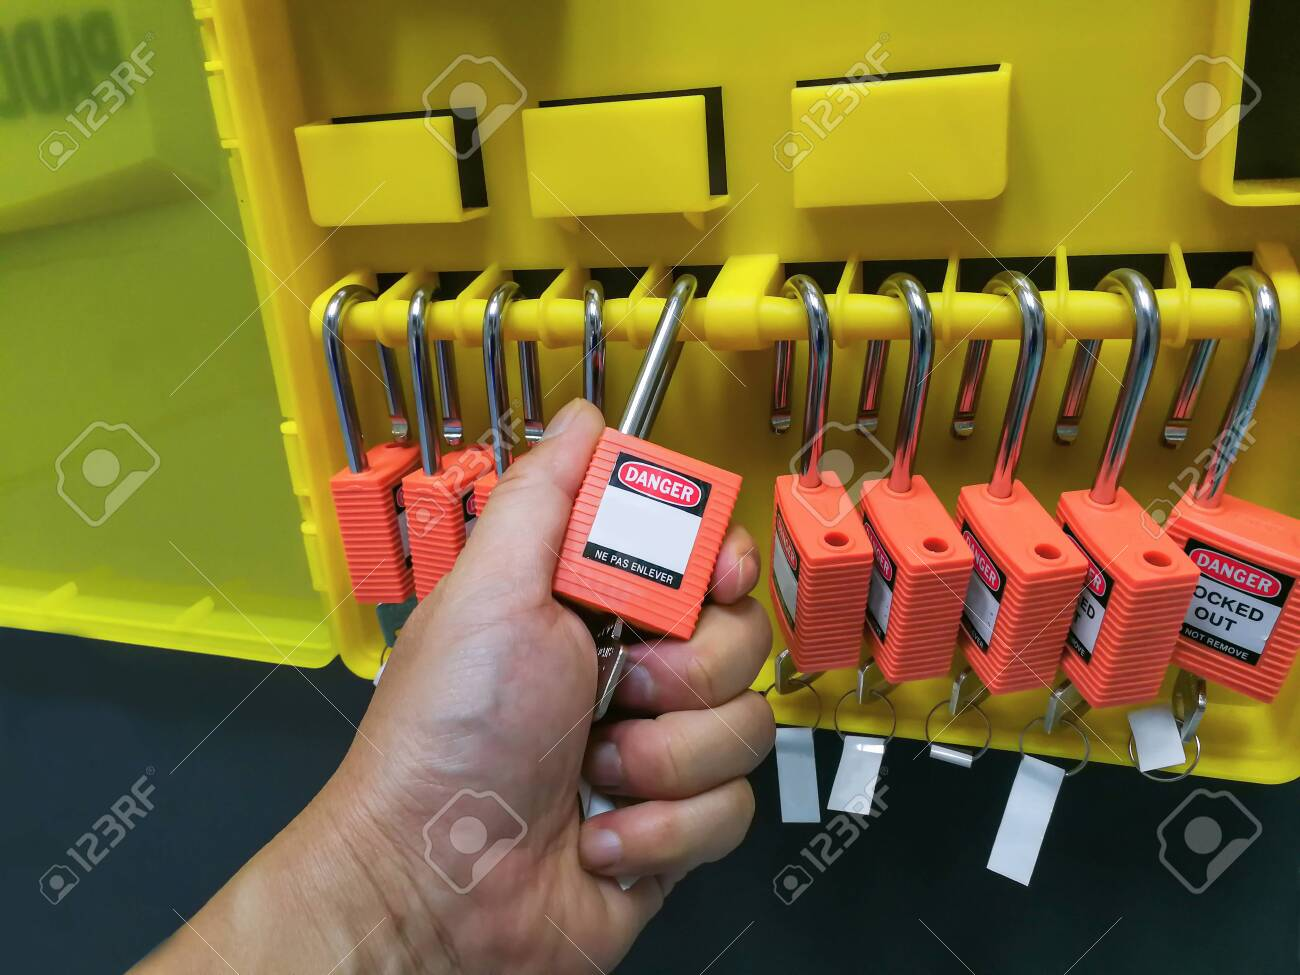 Red key lock and tag for process cut off electrical,the toggle